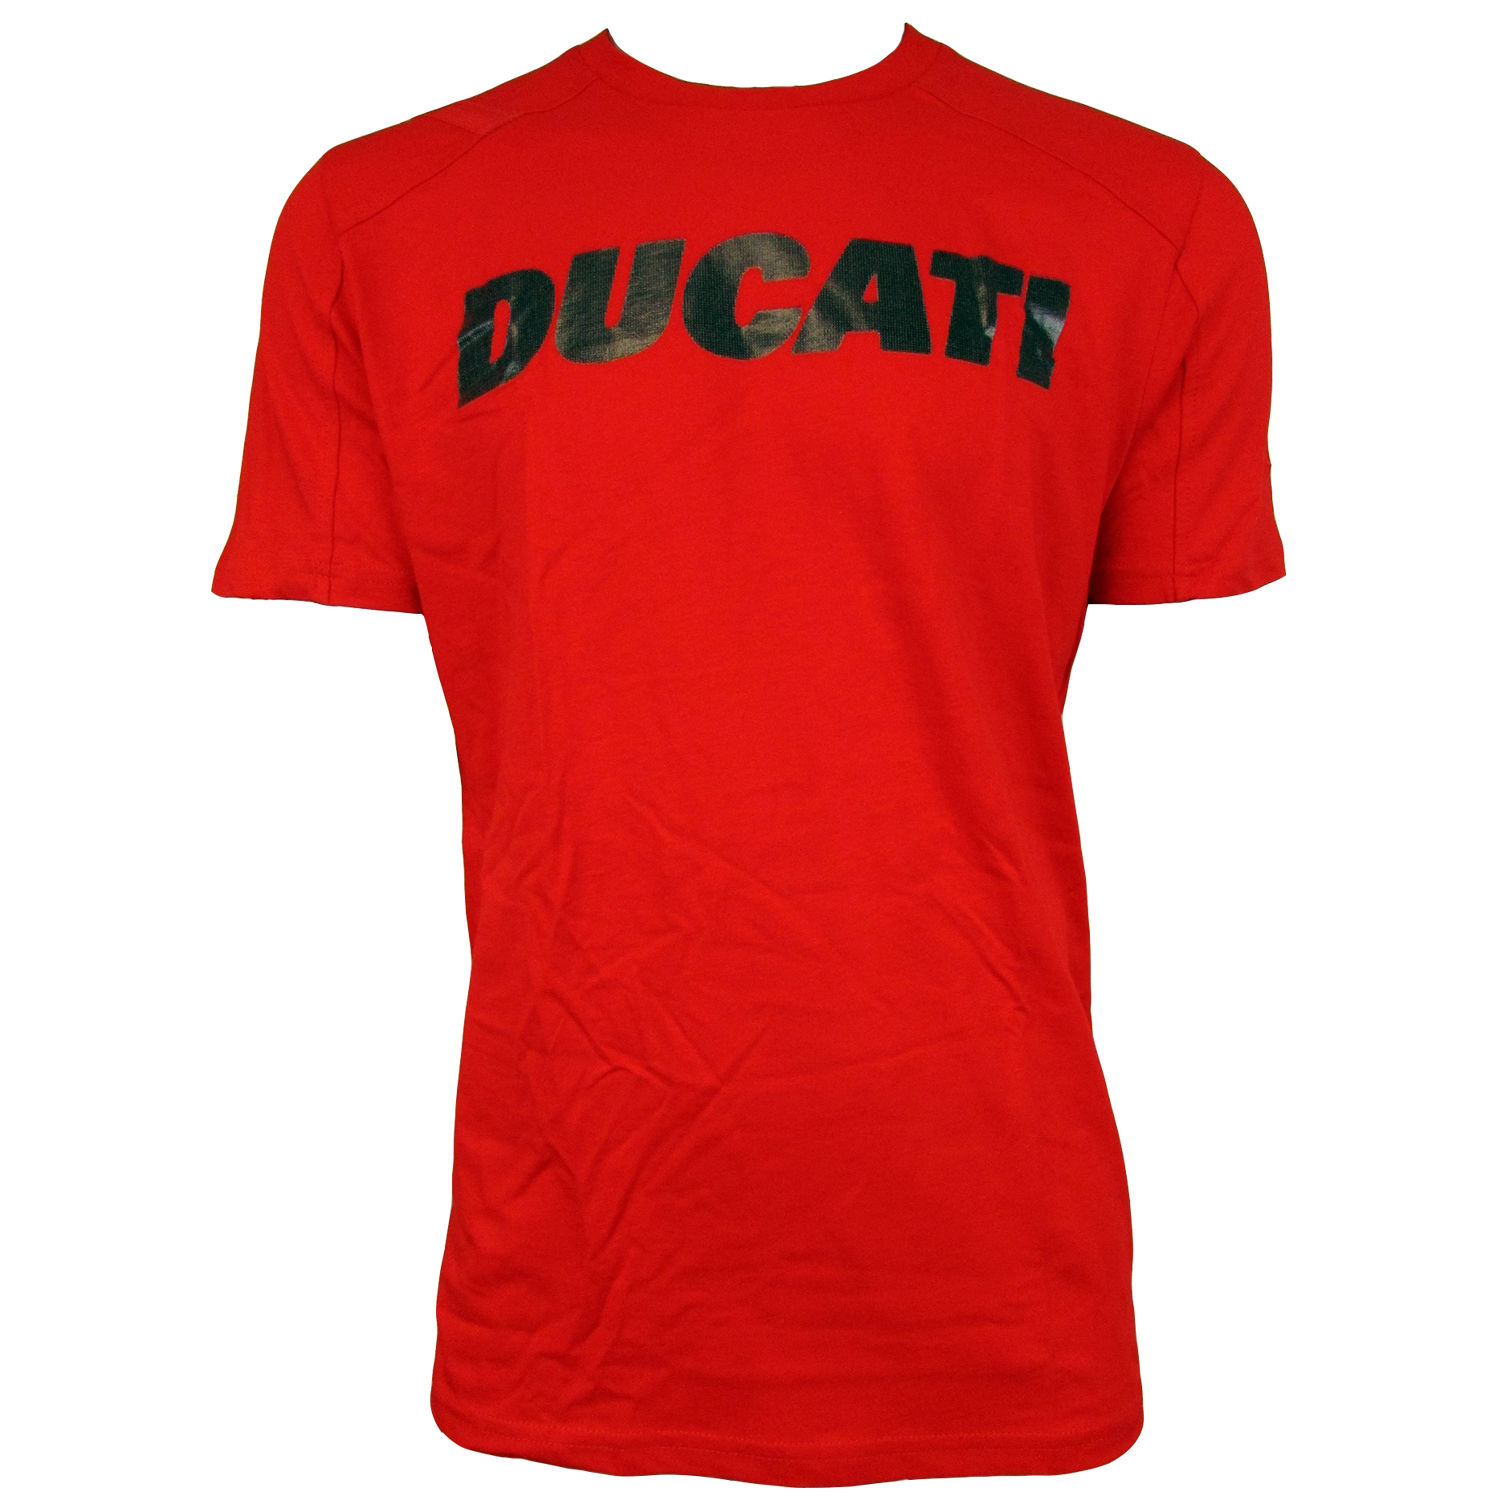 new mens puma ducati motorsport tee red graphic t shirt with logo top size s xxl ebay. Black Bedroom Furniture Sets. Home Design Ideas